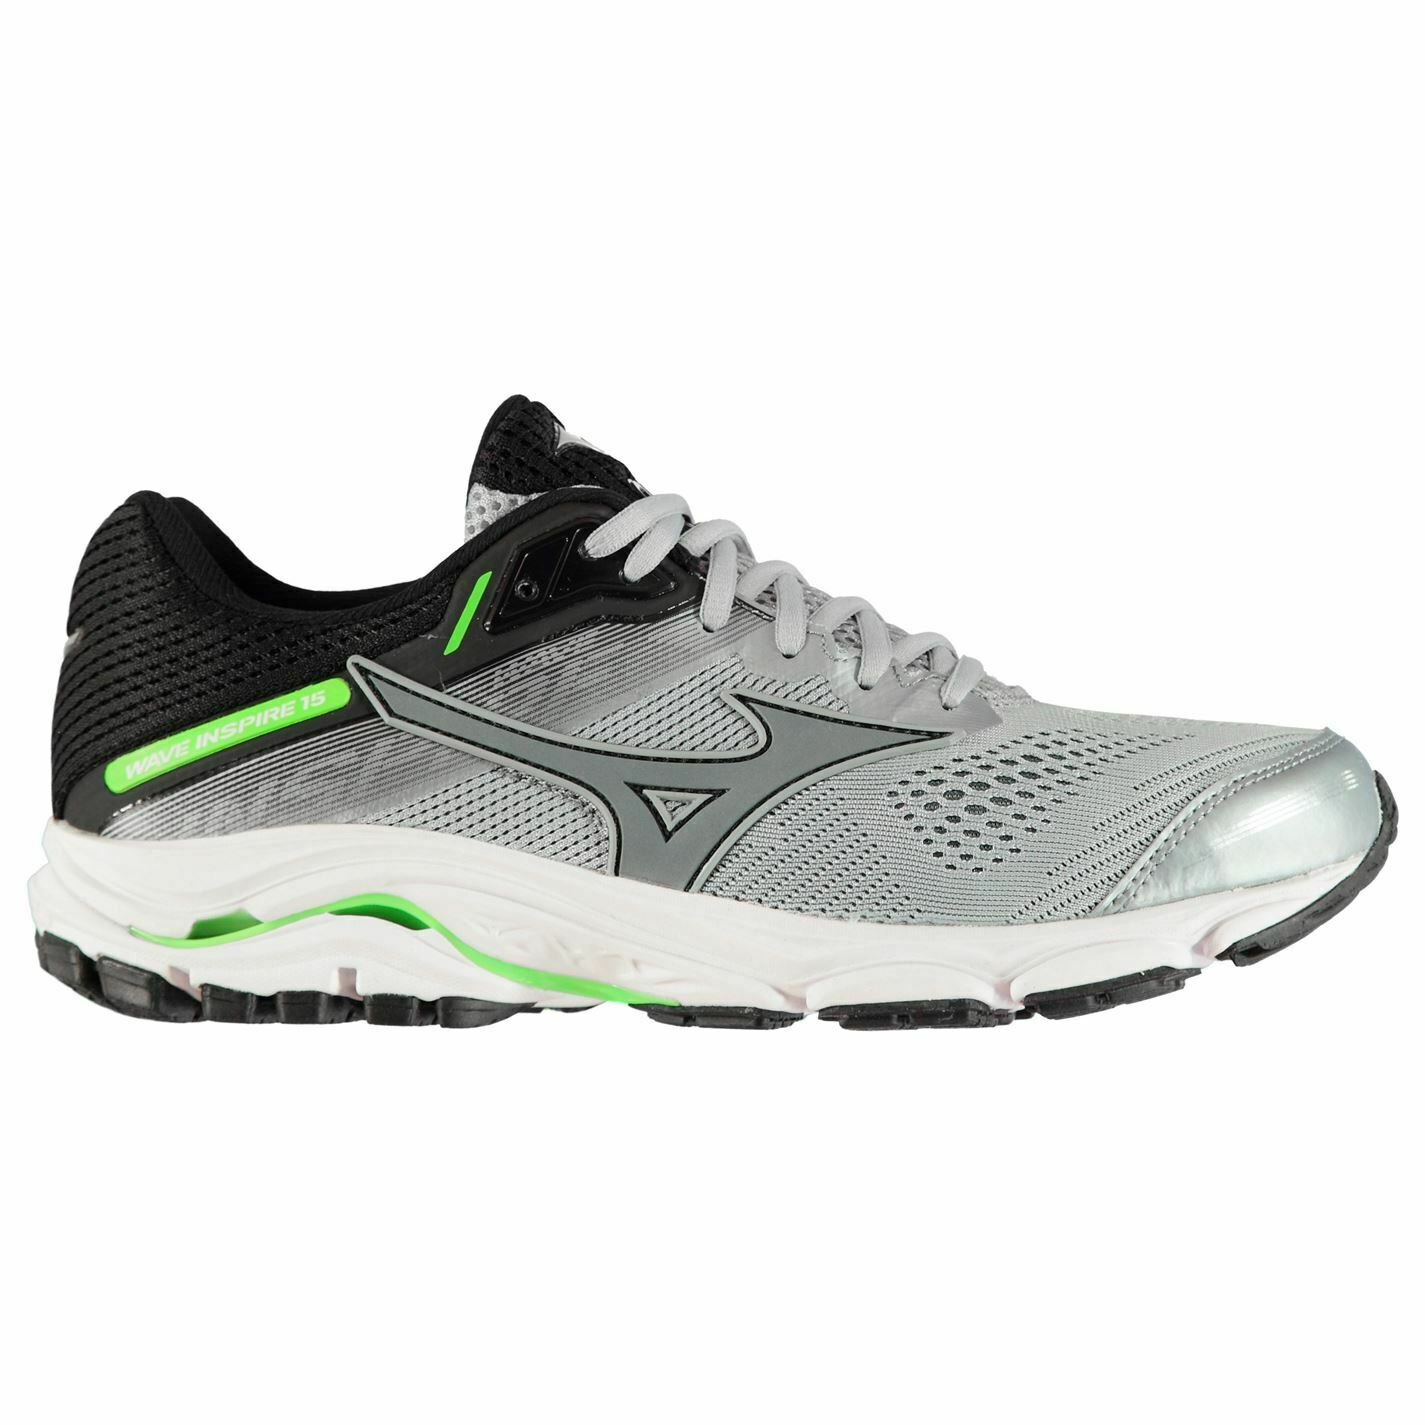 Mizuno Mens Wave Inspire 15 Running shoes Athletic Trainers Sneakers Sport